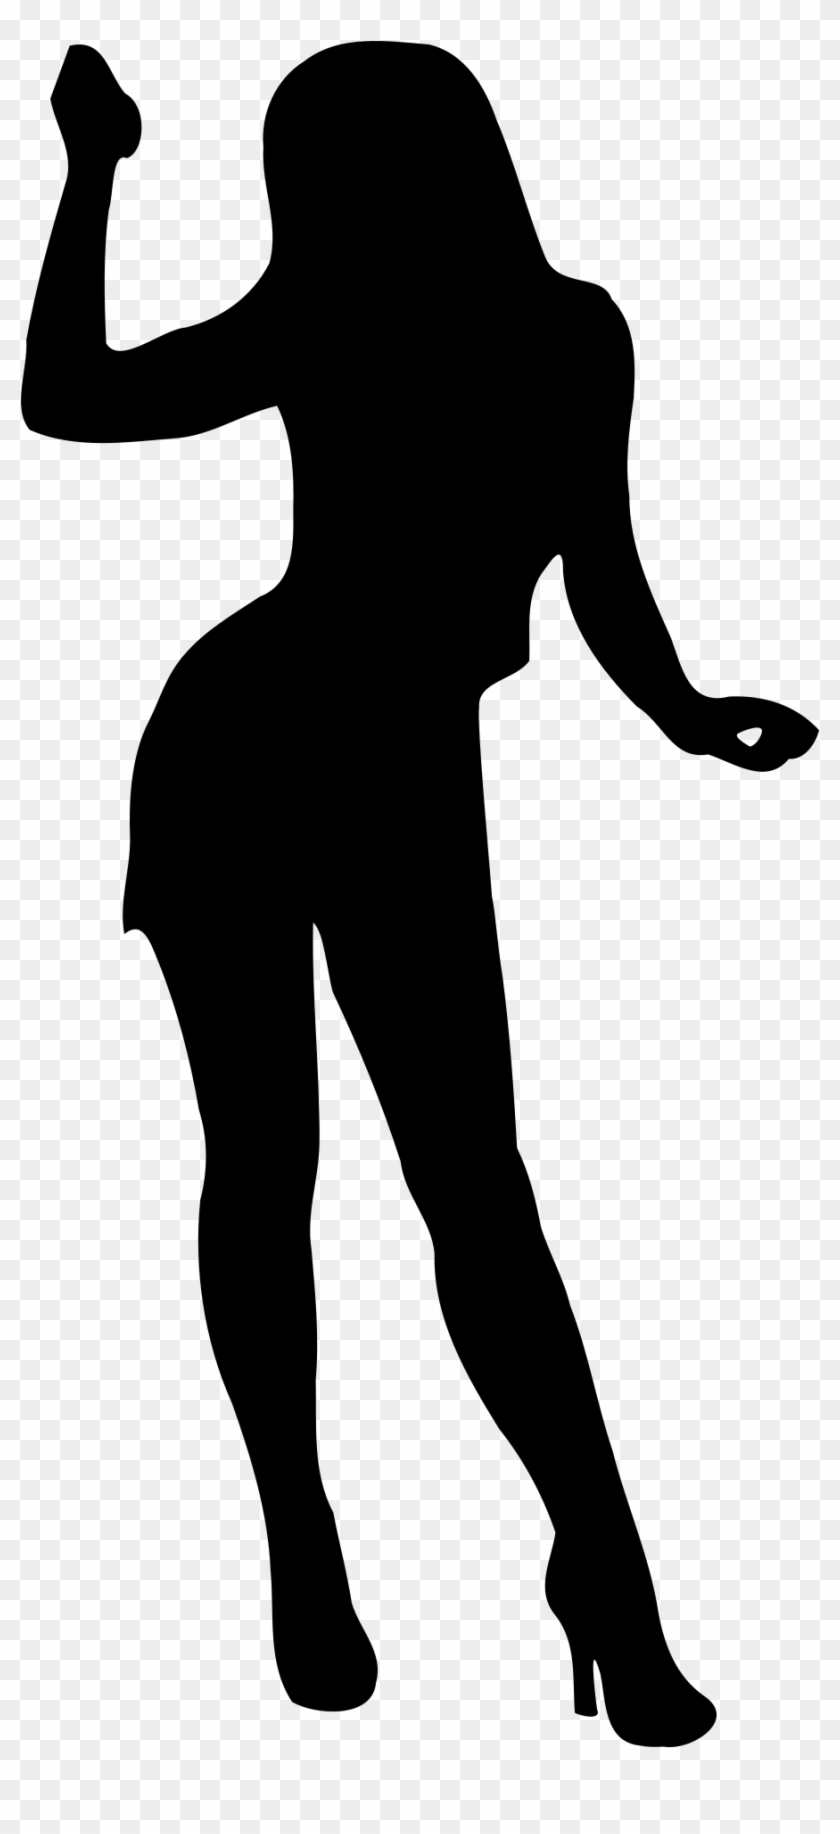 Shadow Clipart Female Body Full Body Silhouette Girl Free Transparent Png Clipart Images Download